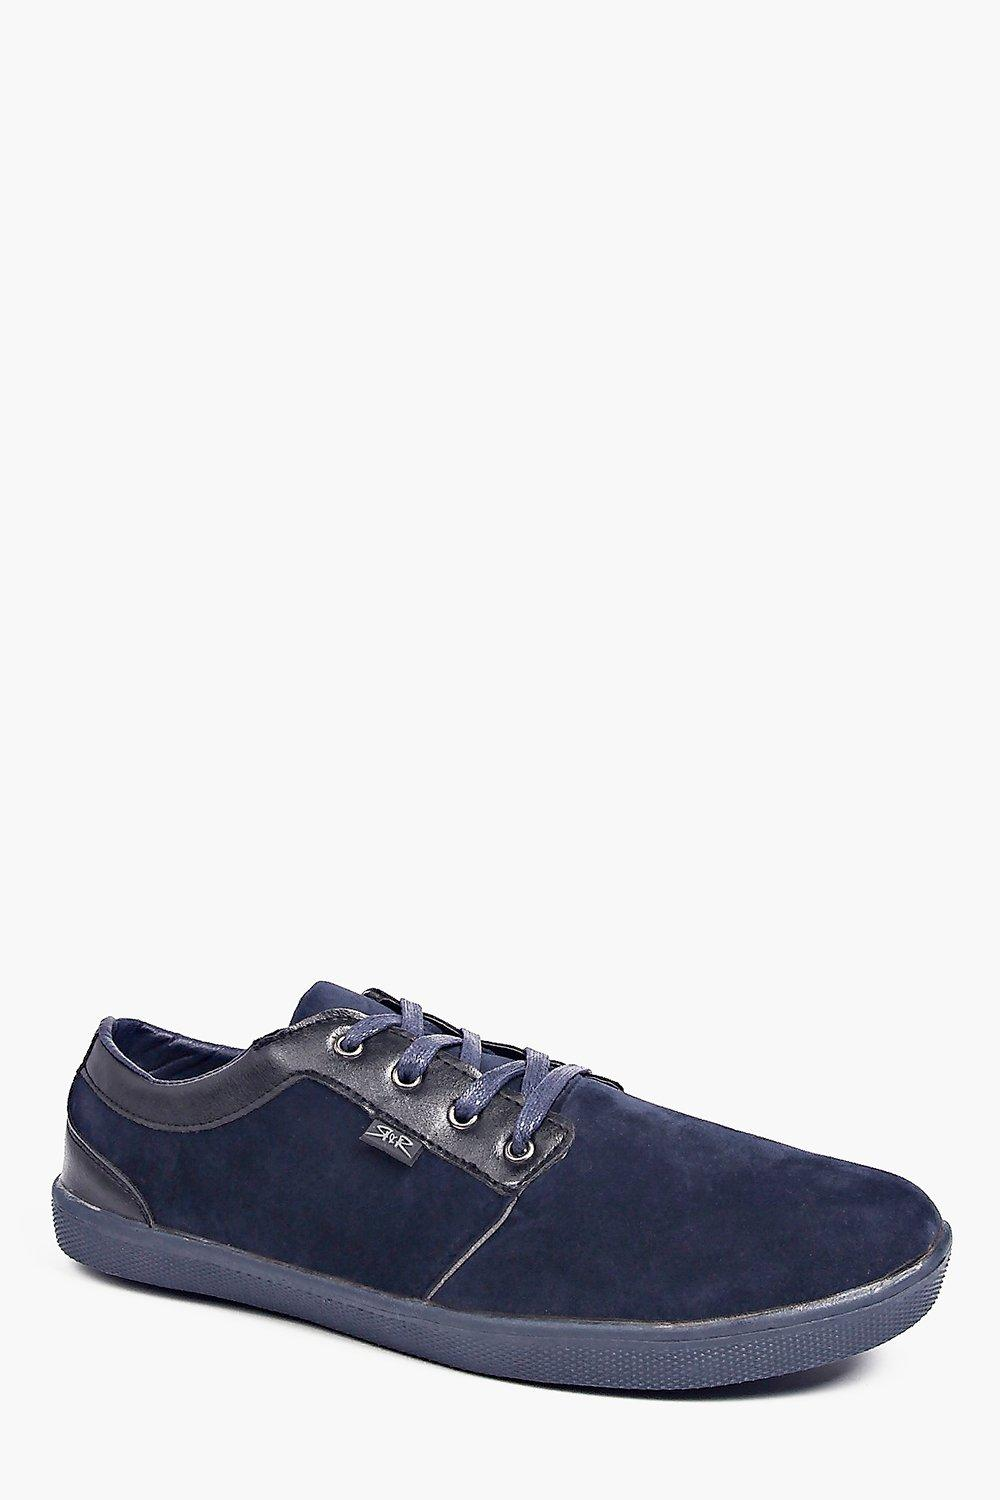 PU Trim Lace Up Plimsoll